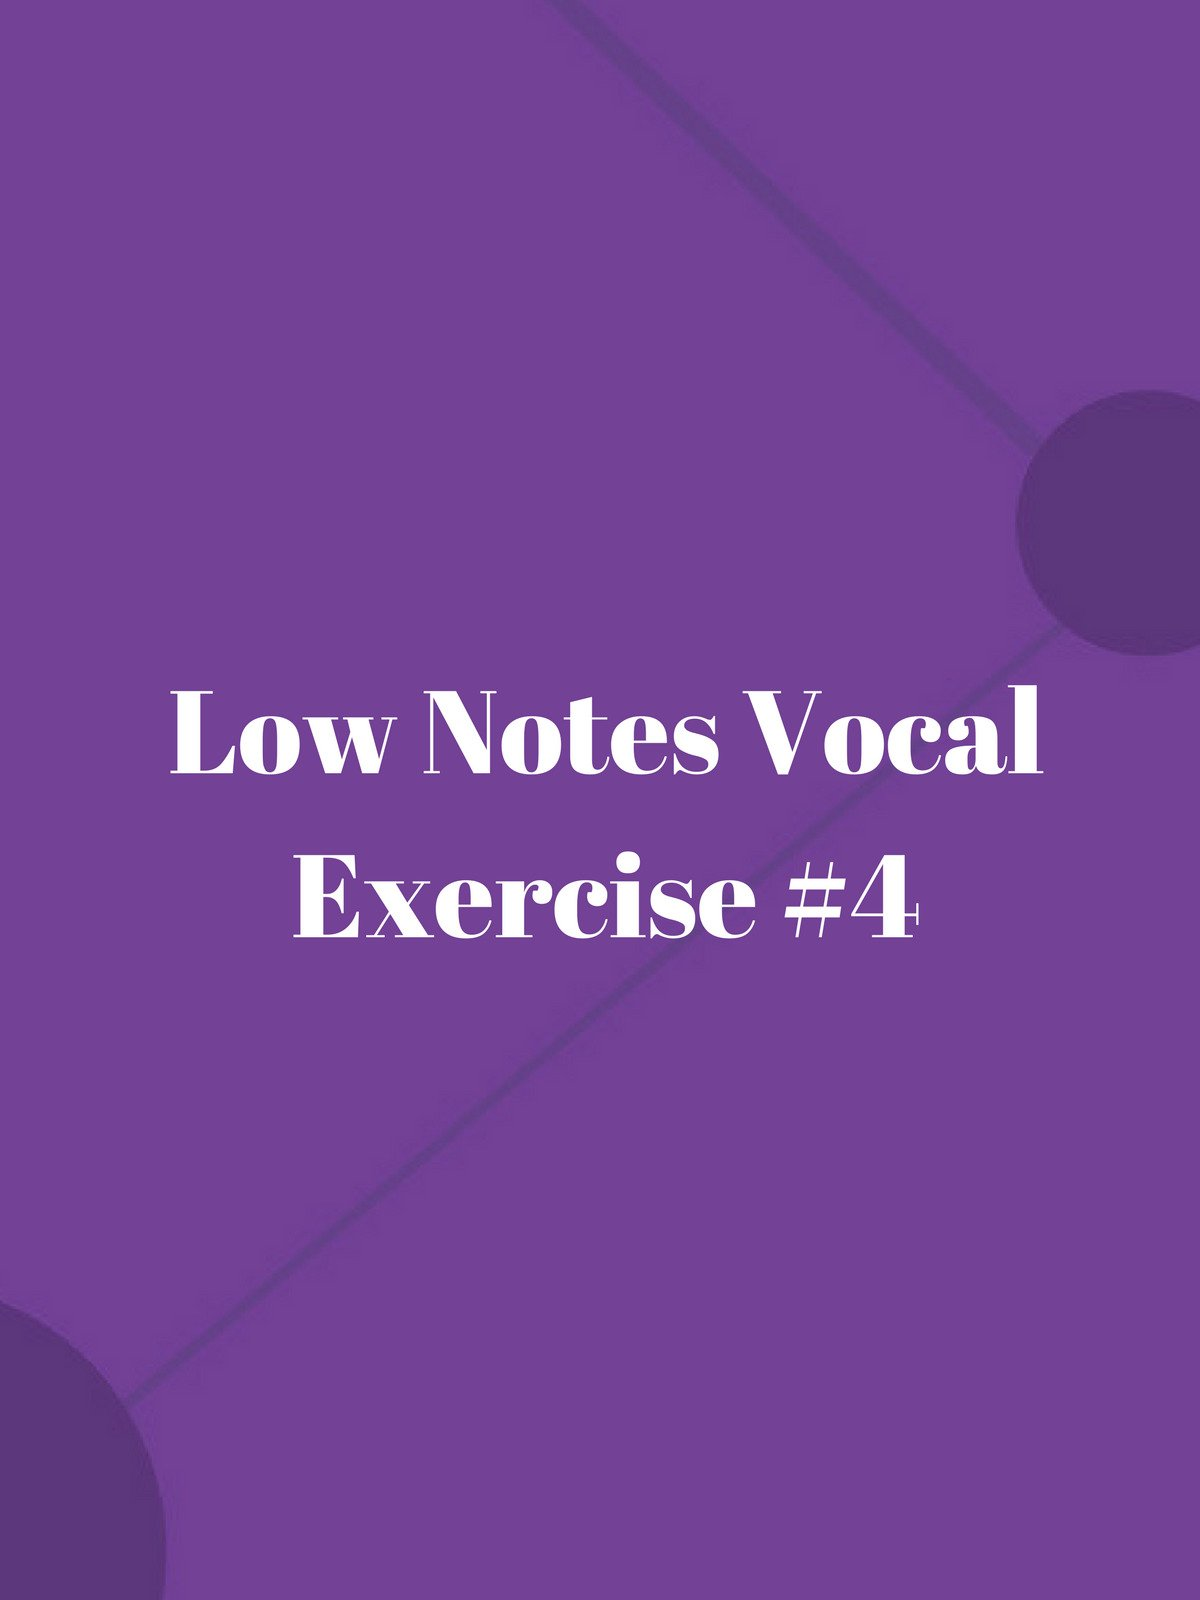 Low Notes Vocal Exercise #5 on Amazon Prime Video UK